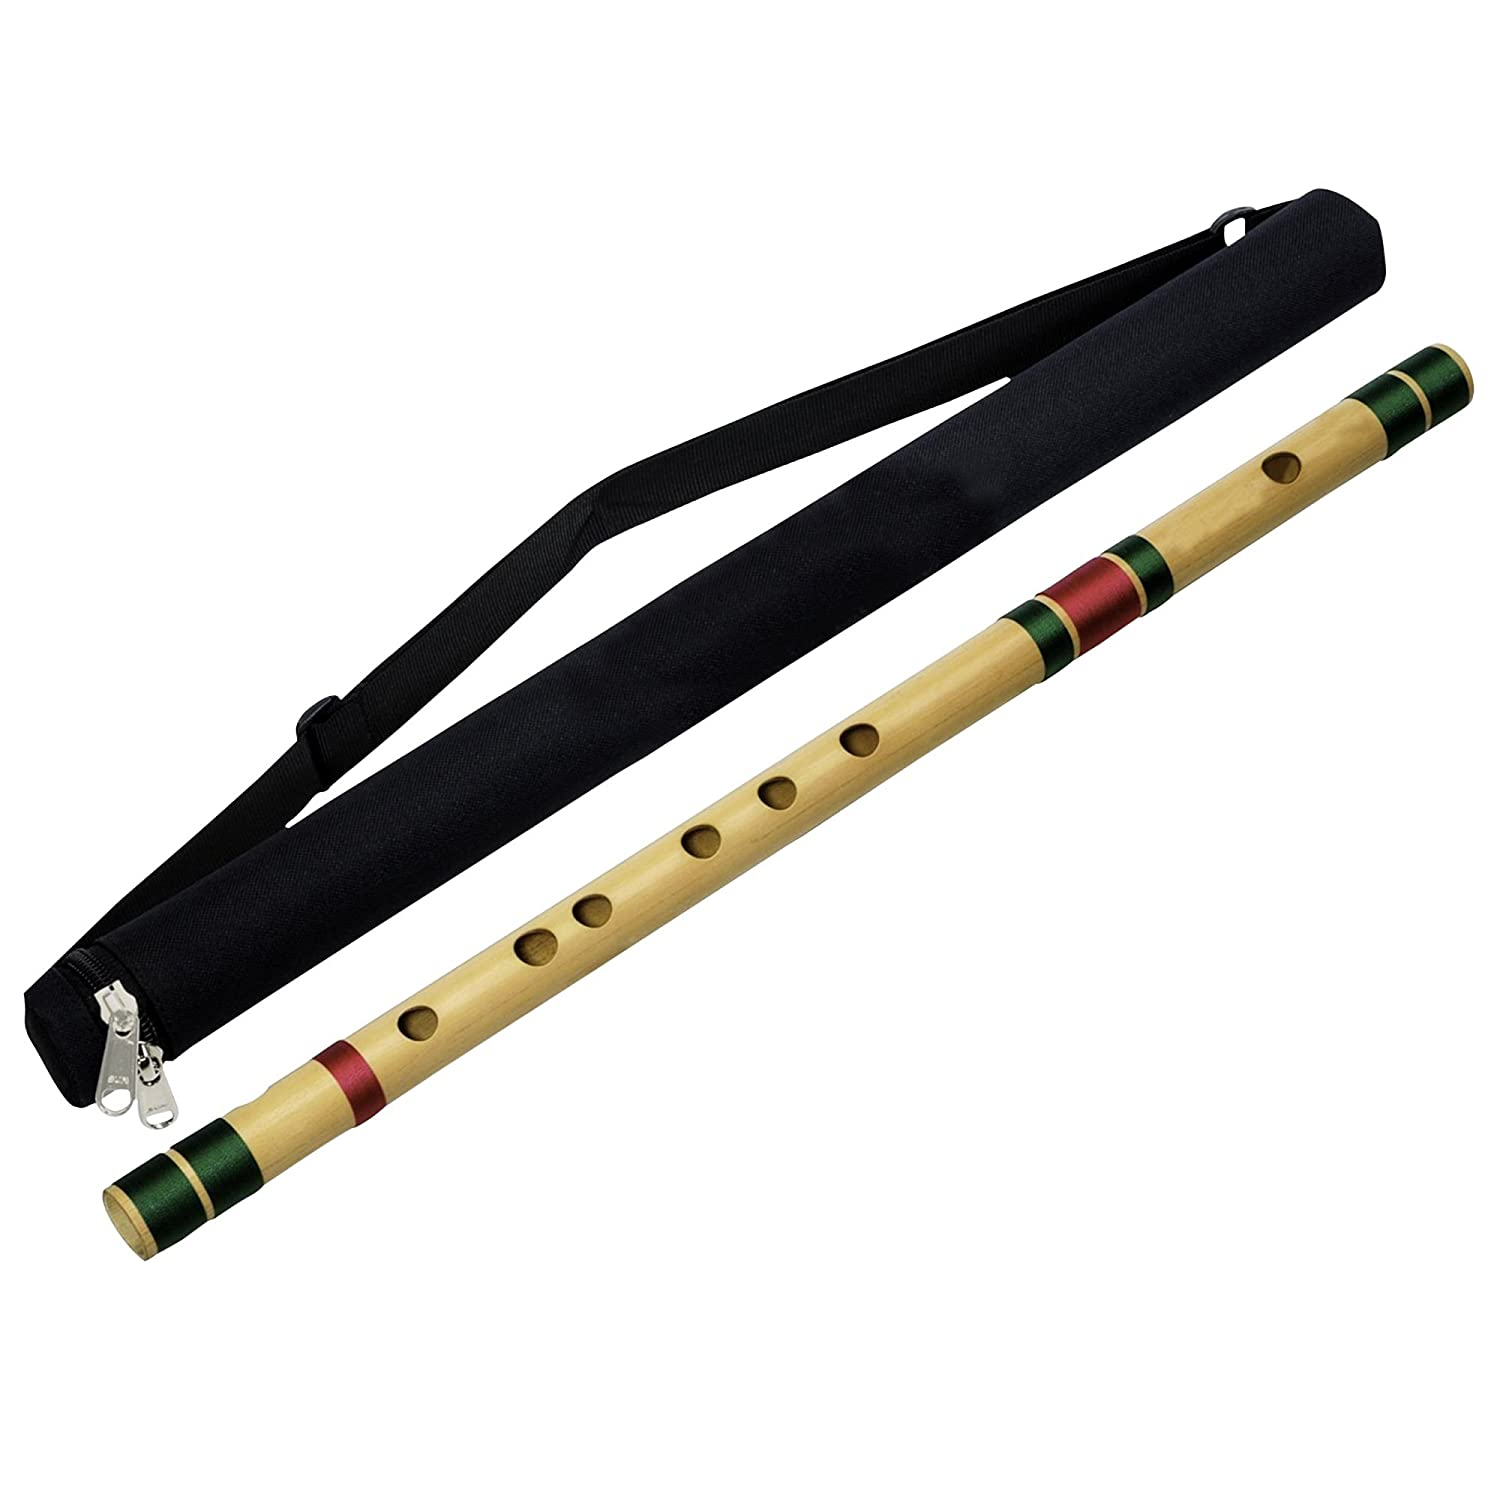 Professional Transverse Bansuri Indian Base Bamboo Flute (C Tune) Musical Instrument Woodwind 36.5 Inches RoyaltyRoute professional_base_flute_c